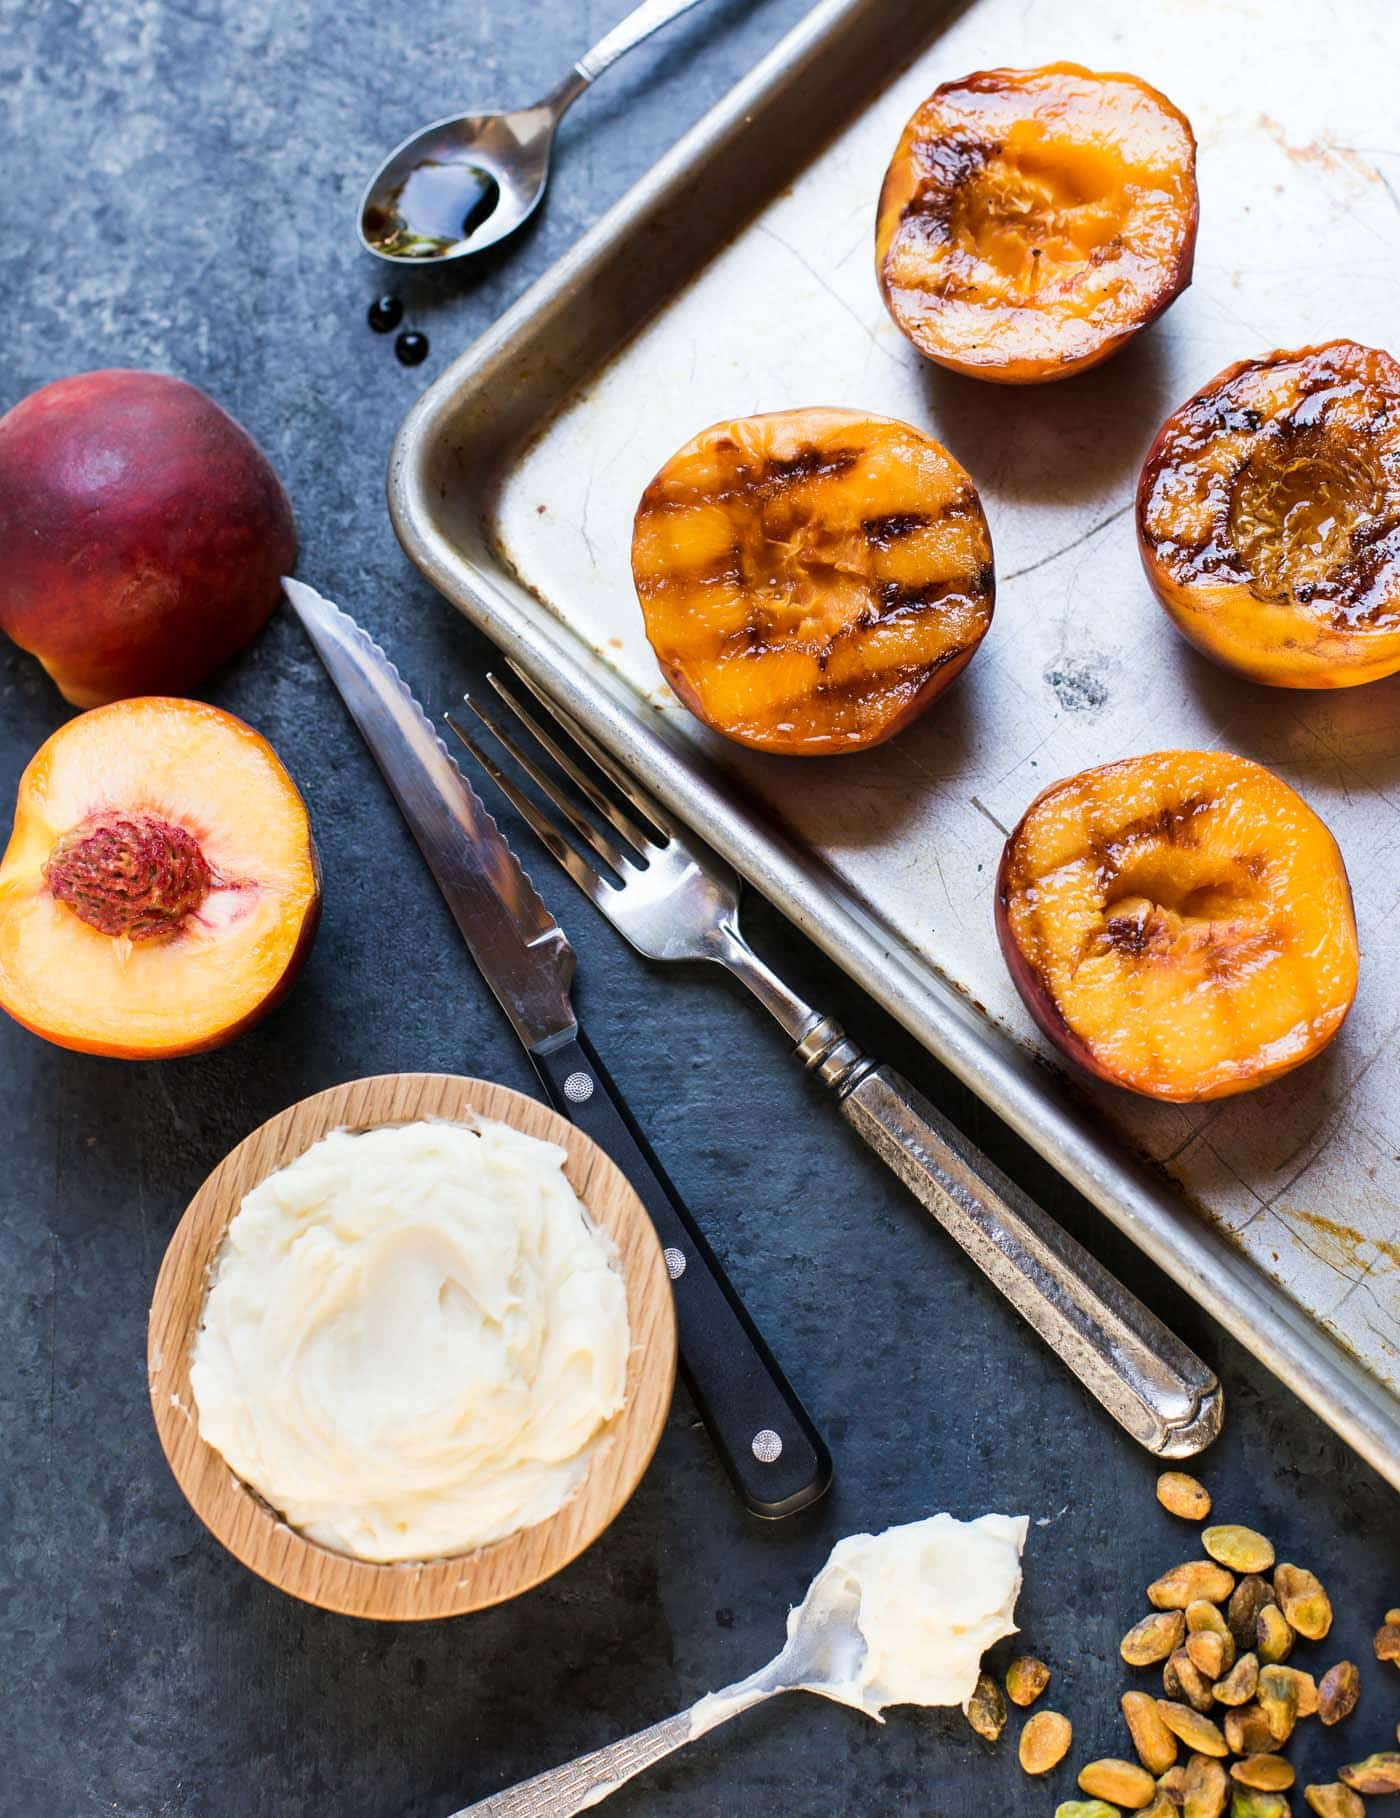 You'll want to keep the grill going for dessert. These juicy Grilled Peaches with Mascarpone, Pistachios and Balsamic Glaze are the perfect sweet ending to any summer BBQ!